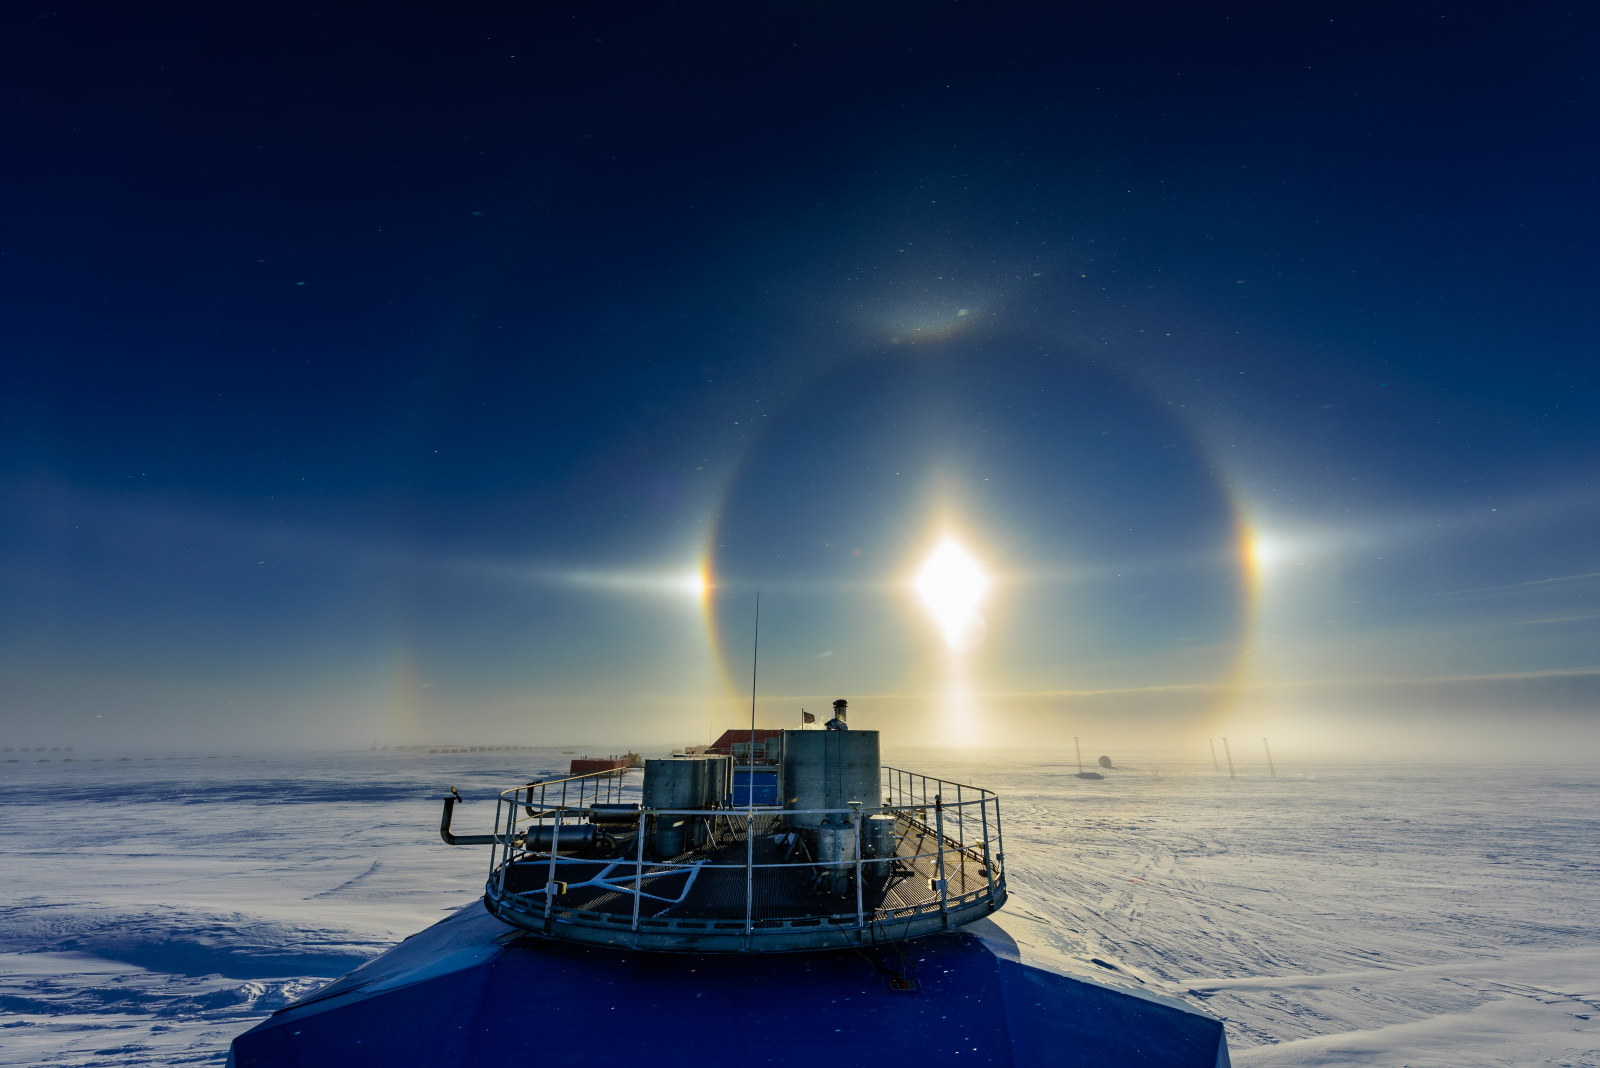 22° and 46°Sun Halos, Sun Dogs, Parhelic Circle, Upper Tangent Arc and Circum Zenithal Arc visible over Halley Research Station, Antarctica